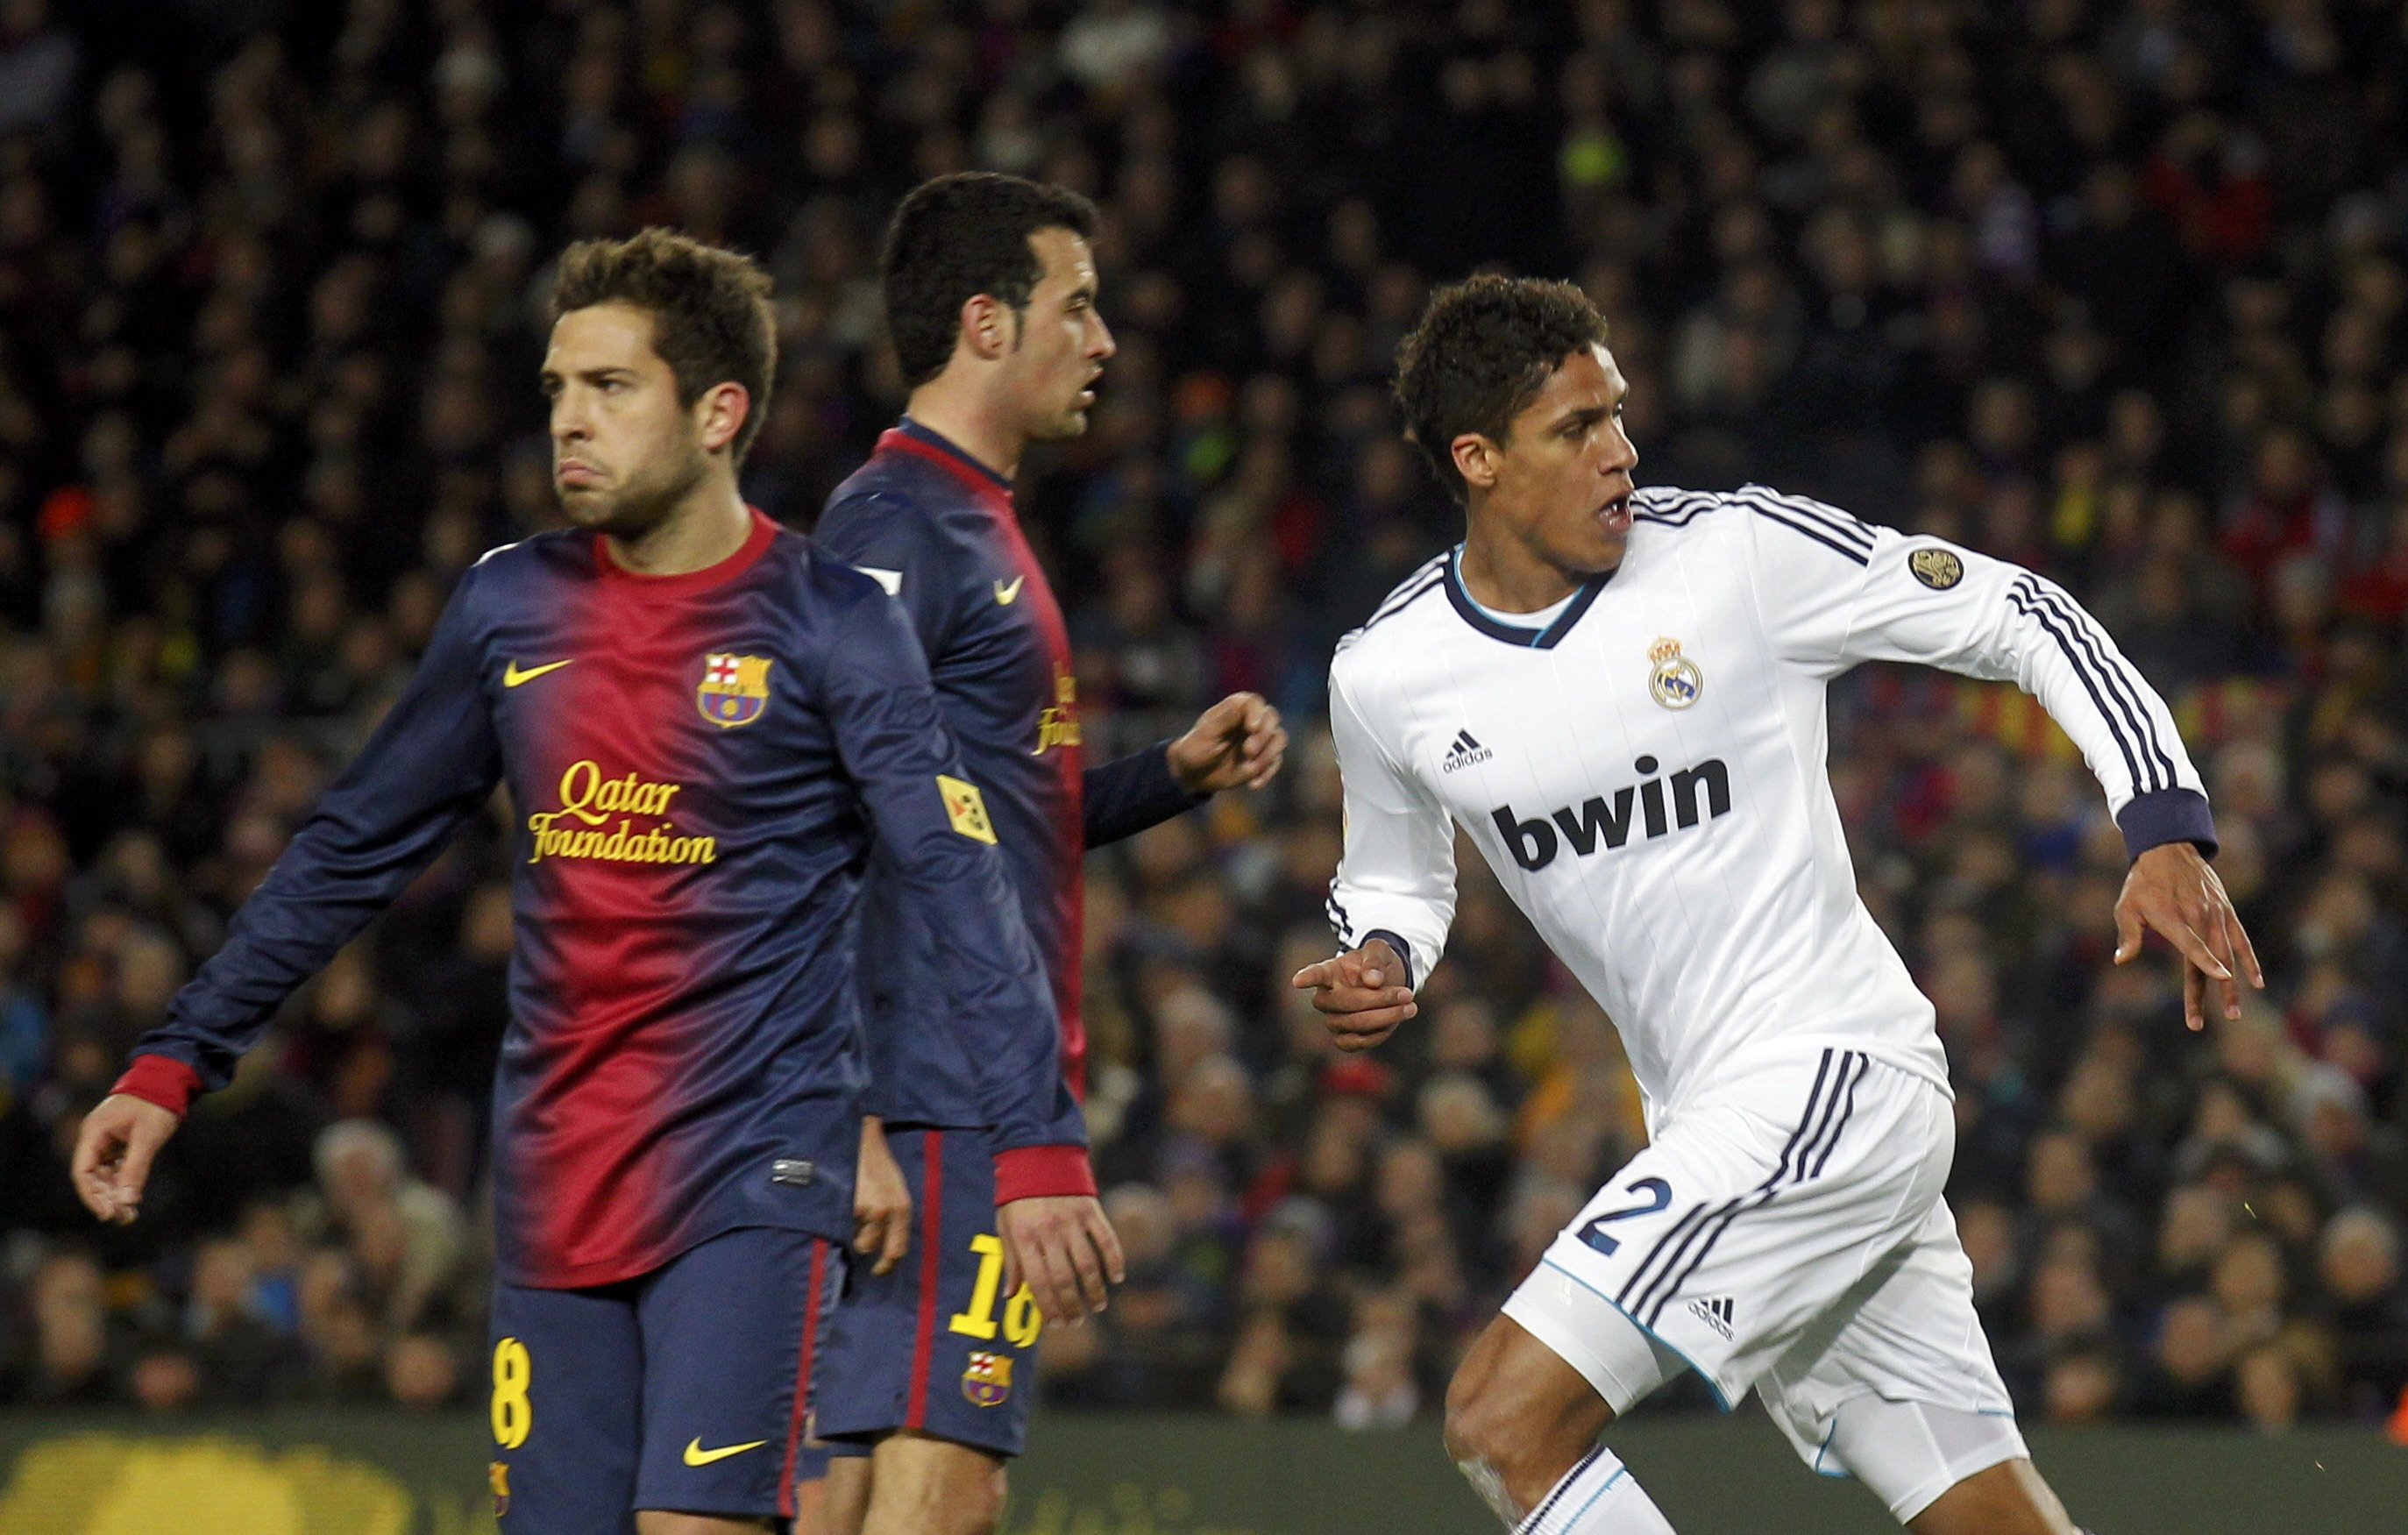 Real Madrid humilla al Barcelona en el Camp Nou